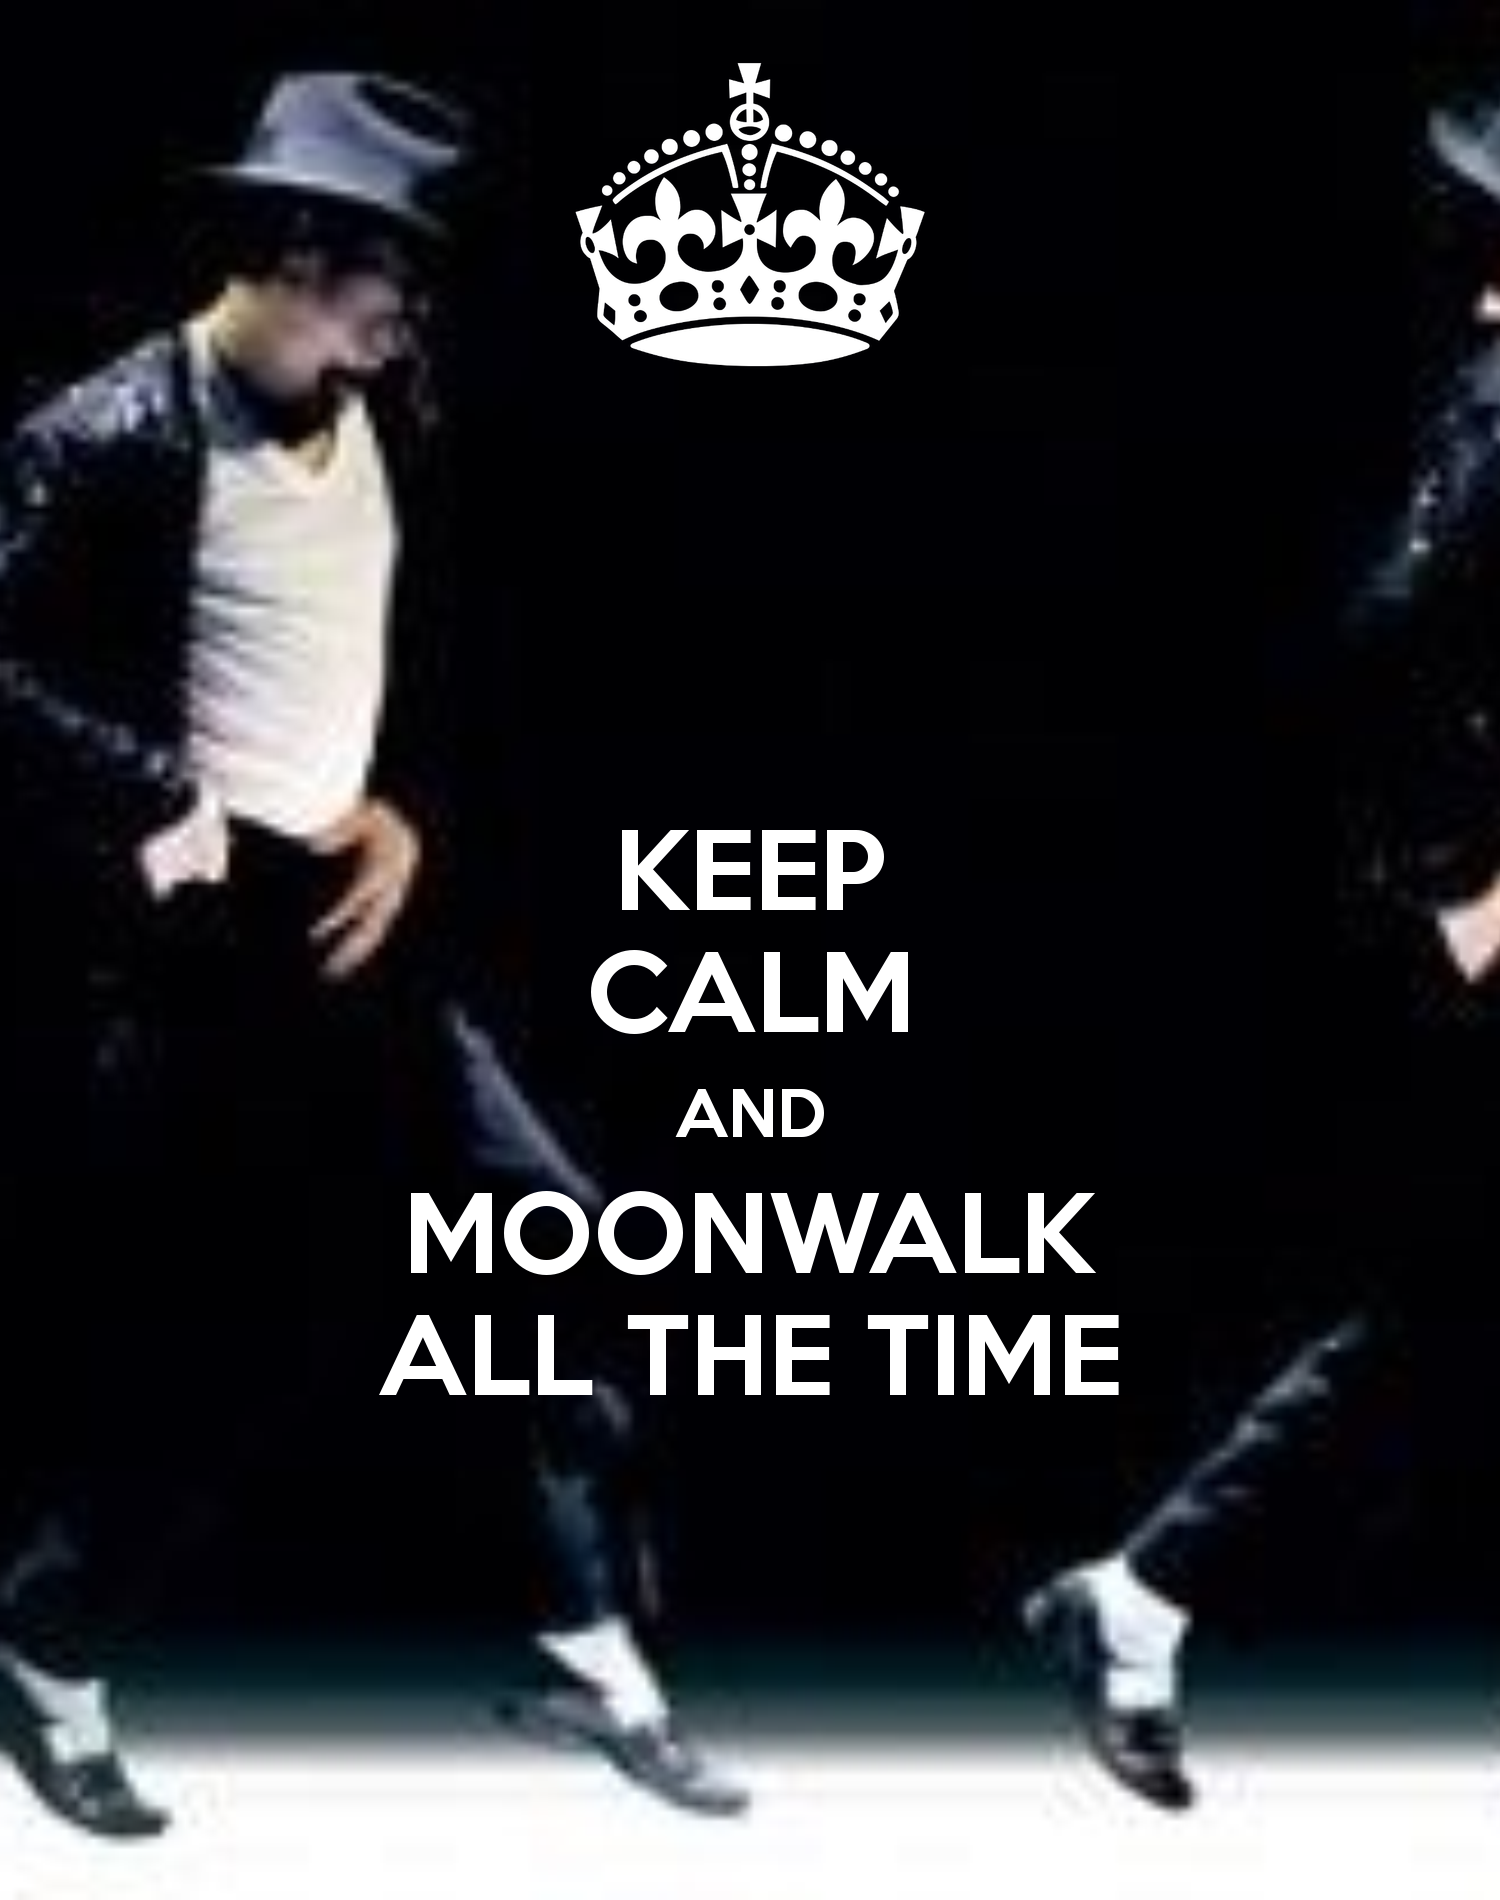 Michael Jackson Moonwalk Wallpaper Desktop Festival Wallpaper 1500x1900